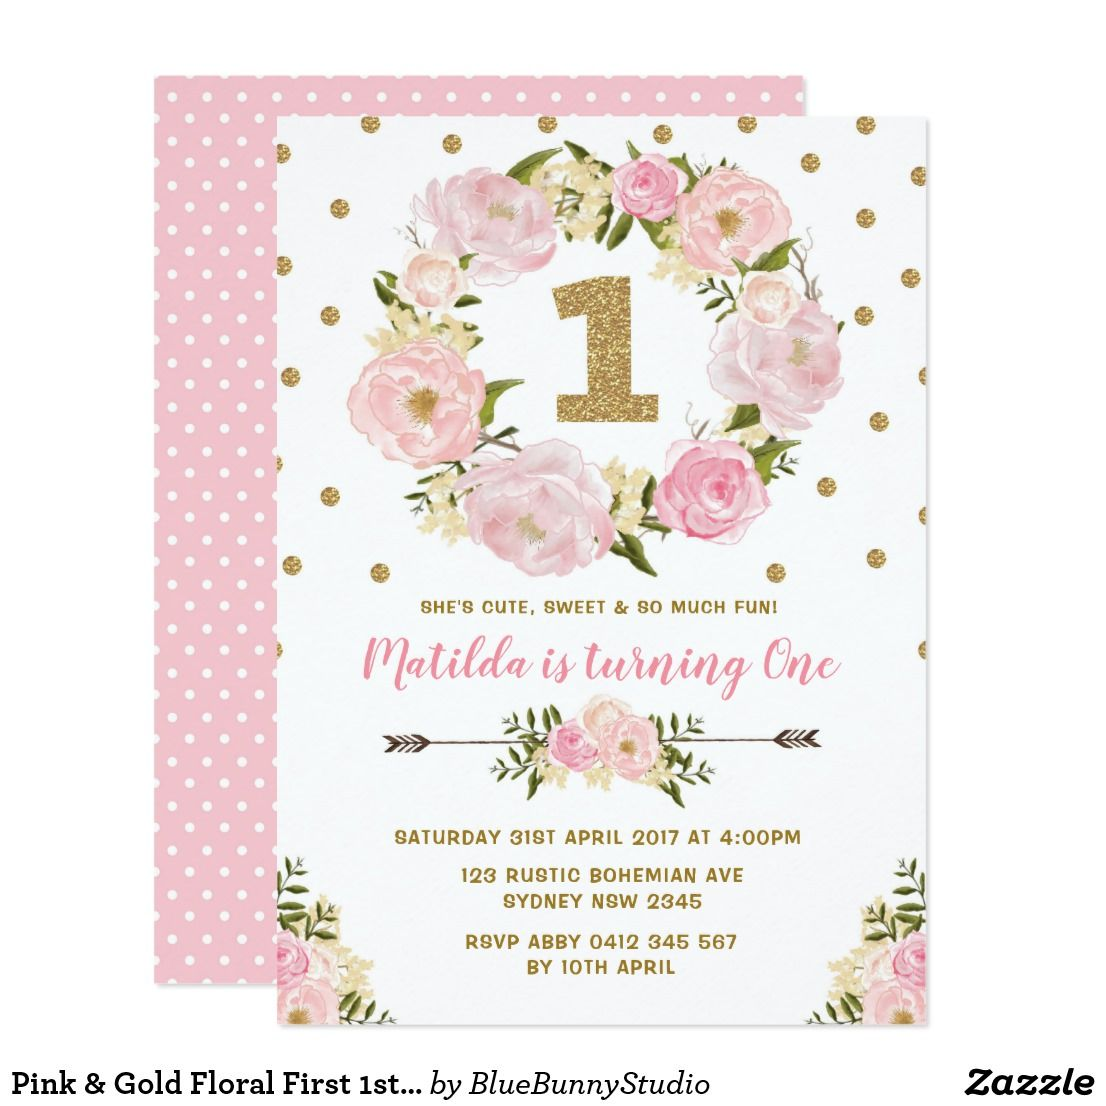 Pink & Gold Floral First 1st Birthday Party Invite in 2018 | { Happy ...